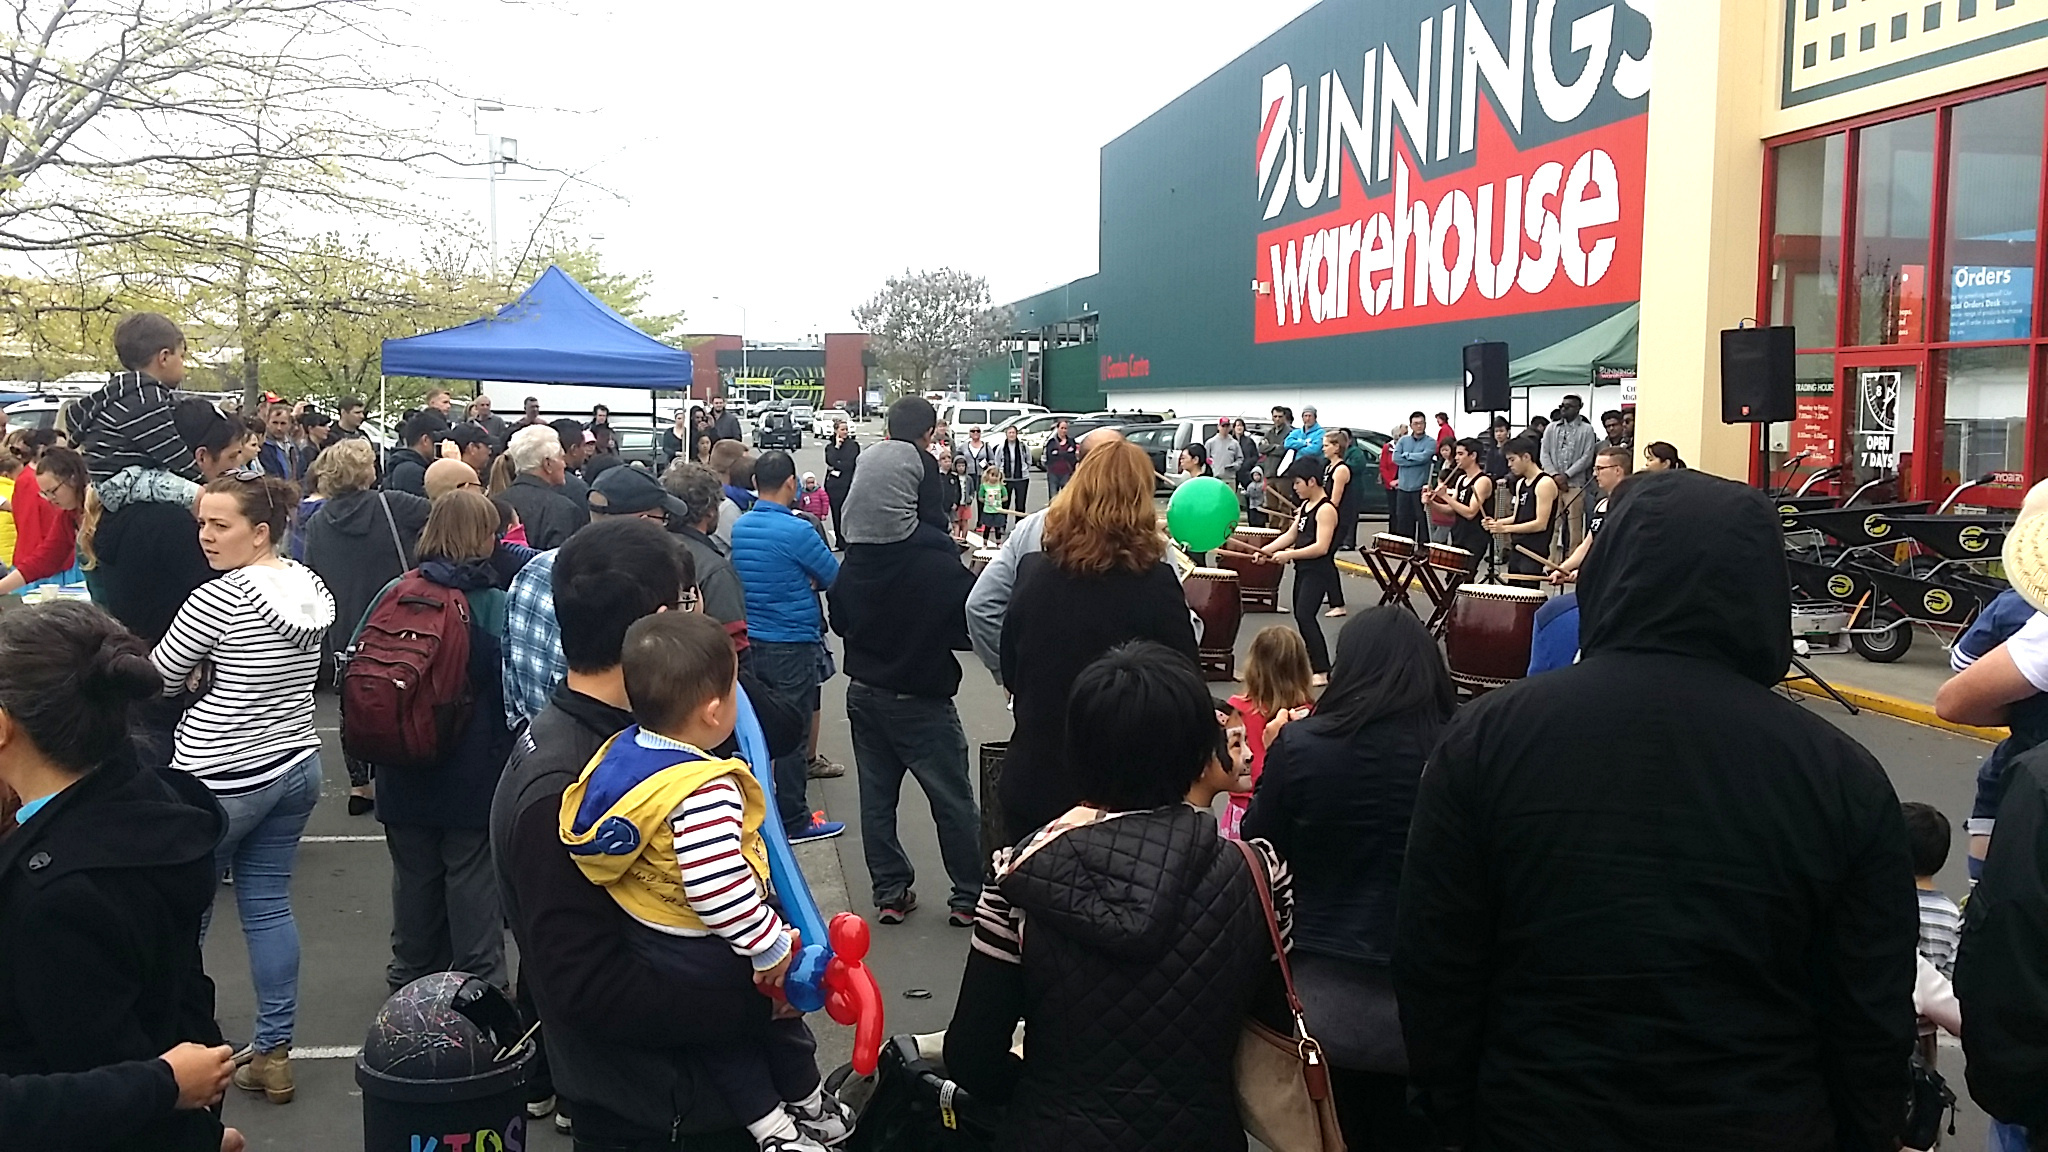 Bunnings. Thanks fr providing us the space!